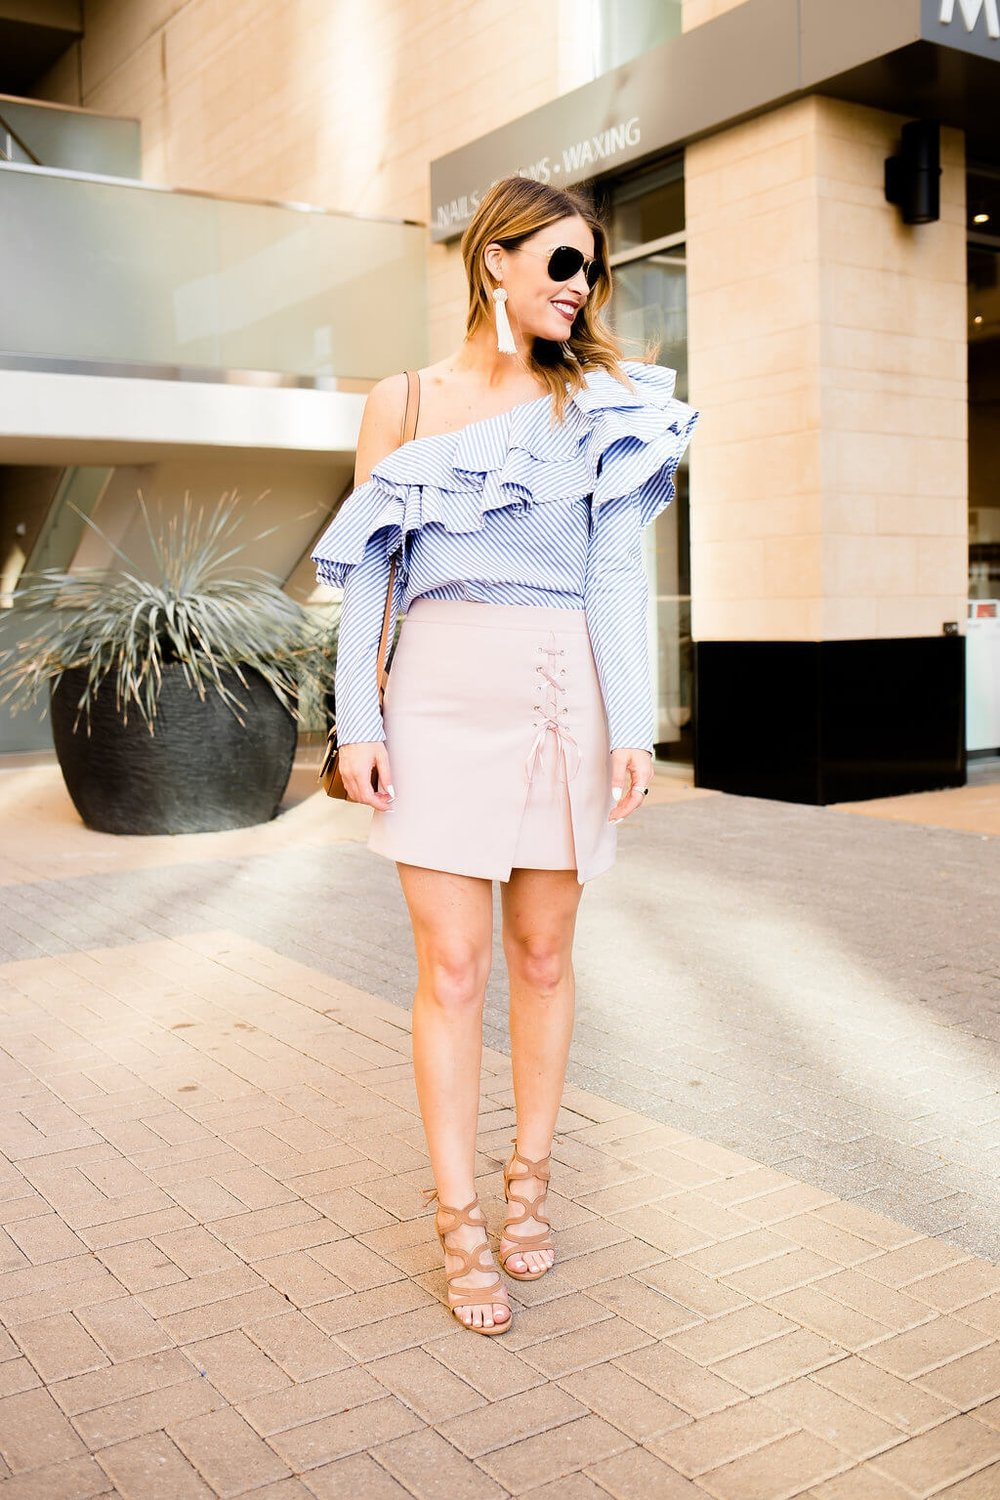 0eb7be4d6bd61 Off Shoulder Ruffle Top + Lace Up Skirt — Whit s Whims